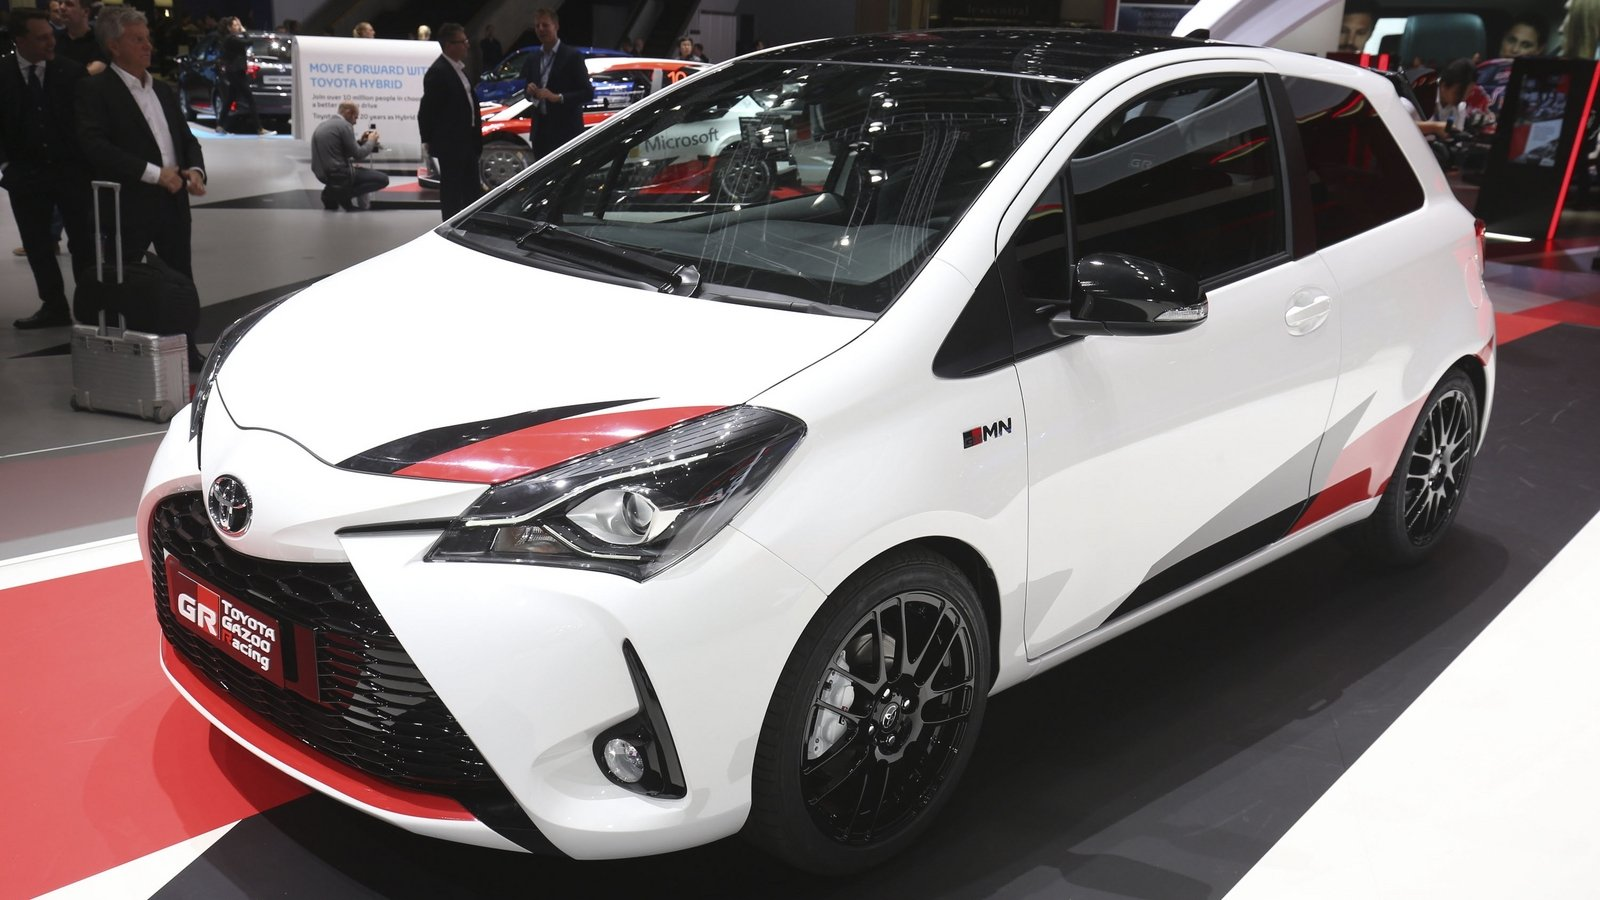 toyota yaris trd sportivo 2018 price new agya 2017 grmn review top speed